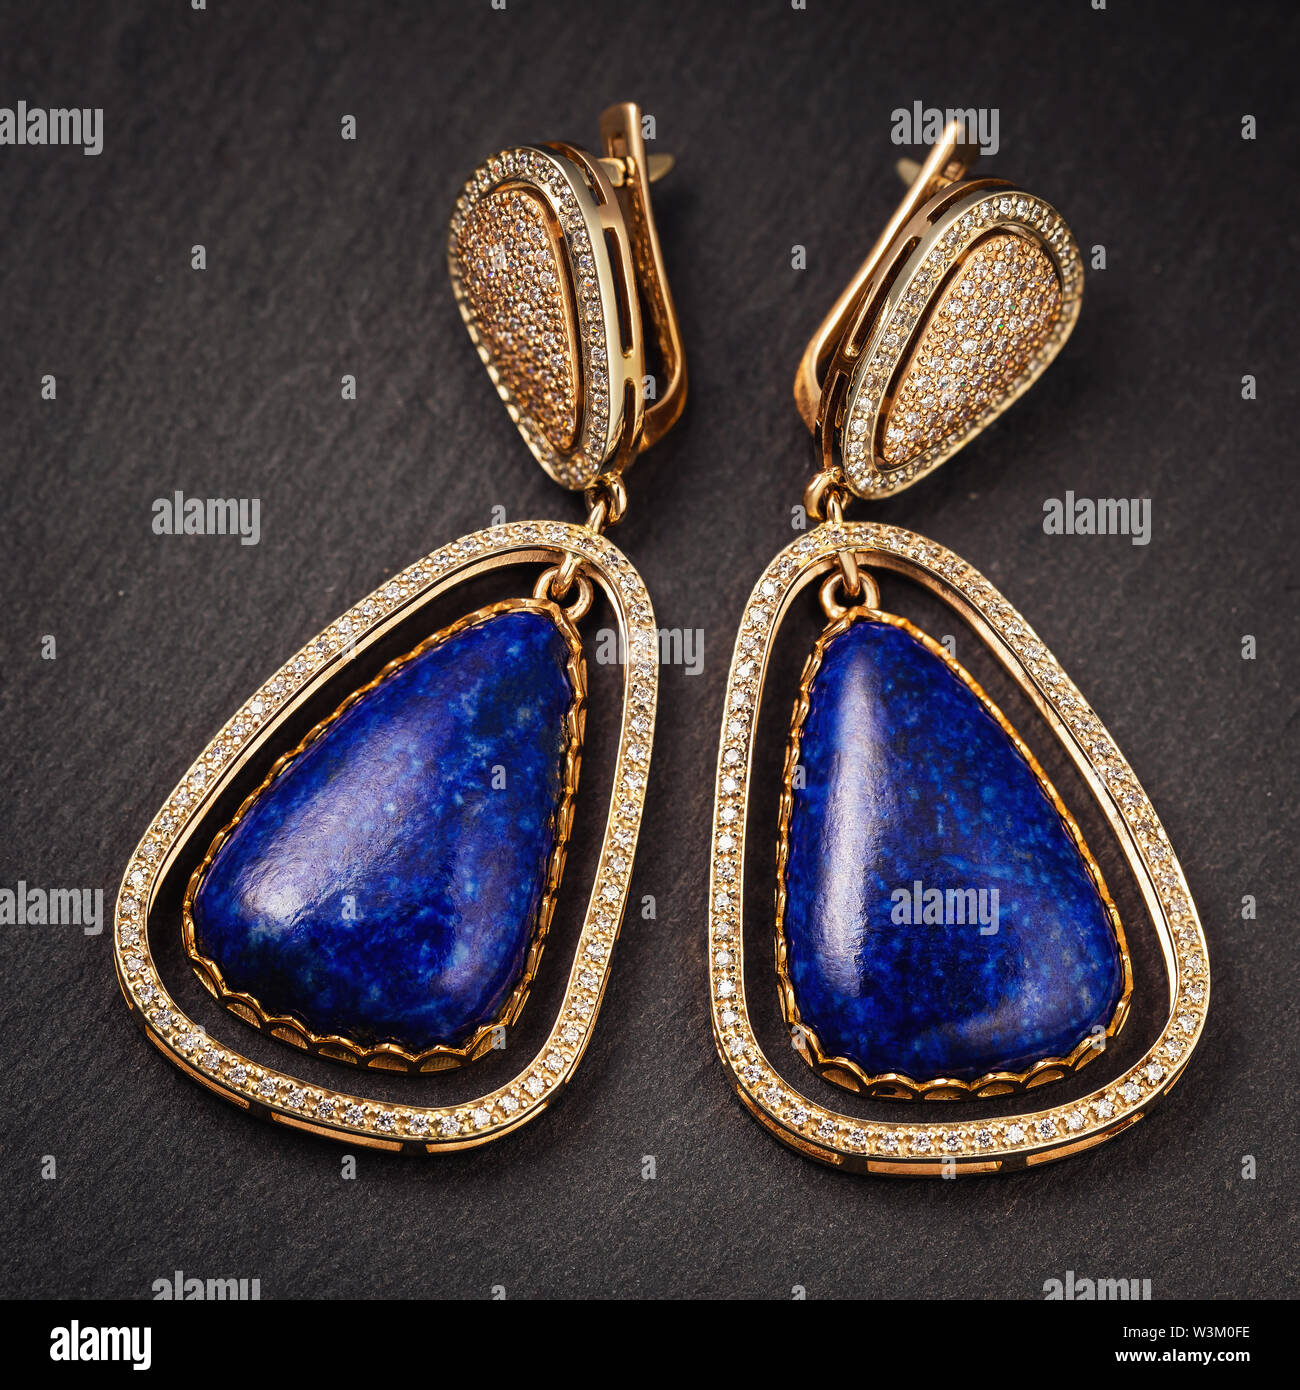 Beautiful gold earrings with lapis lazuli and small cubic zirconias, close-up Stock Photo